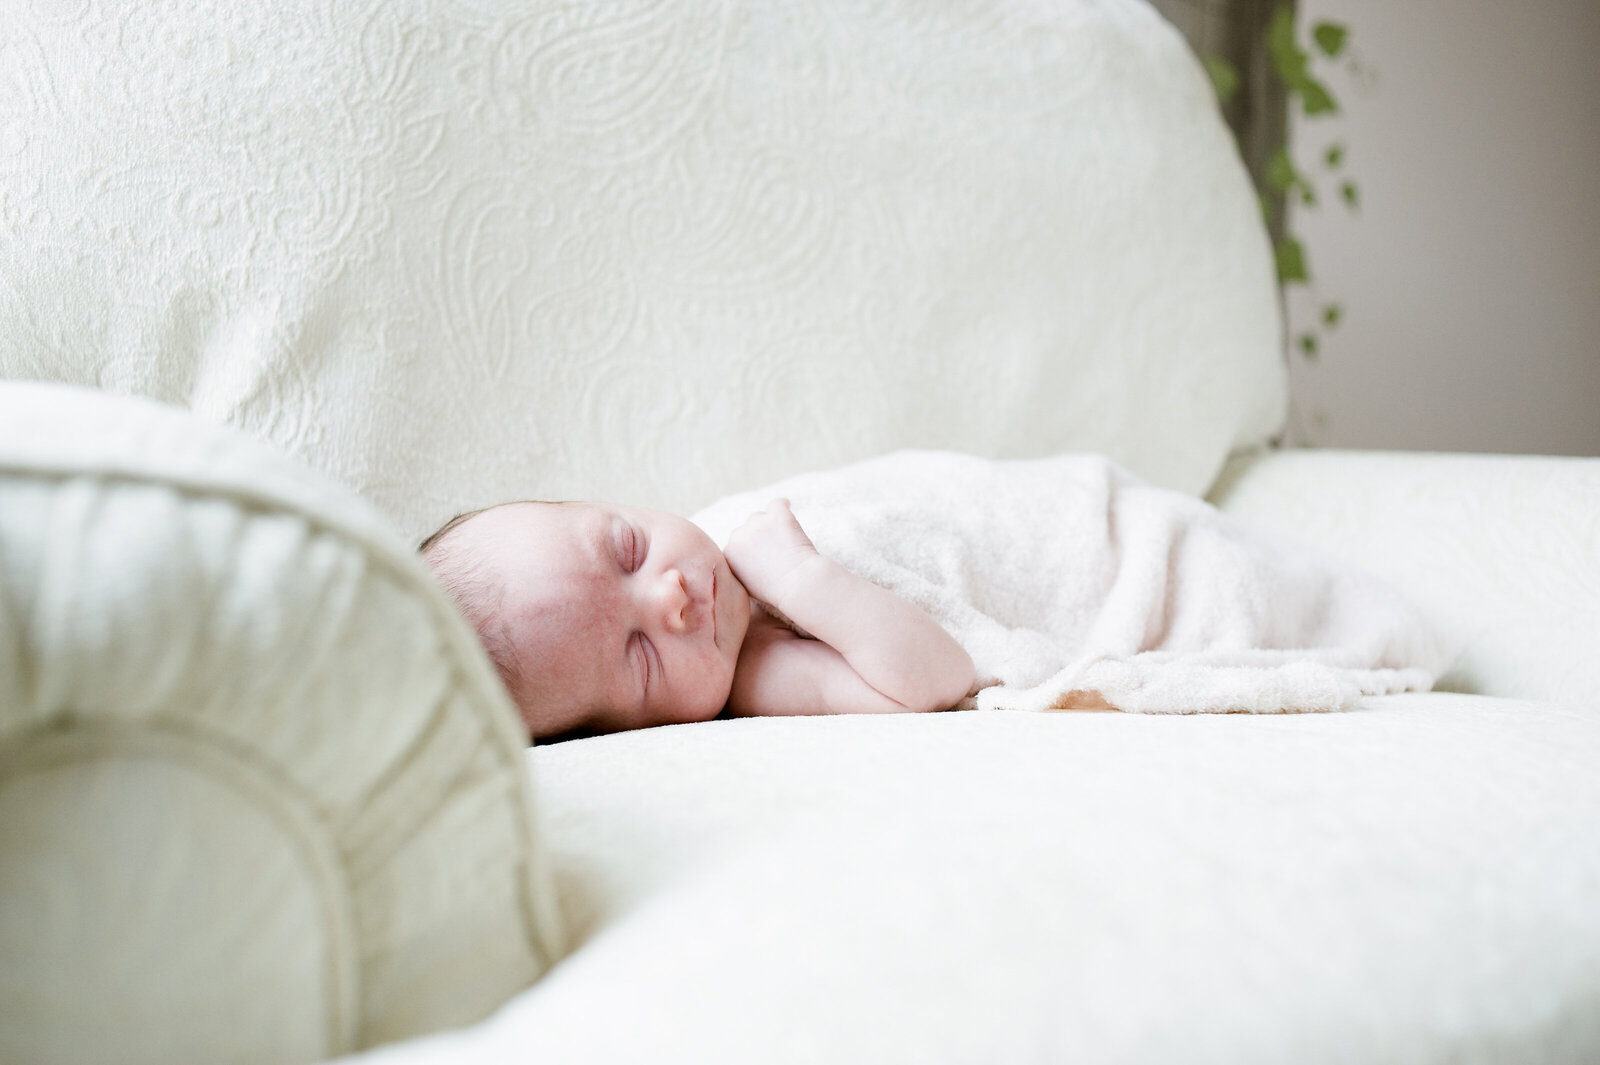 nashville_newborn_photographer_10